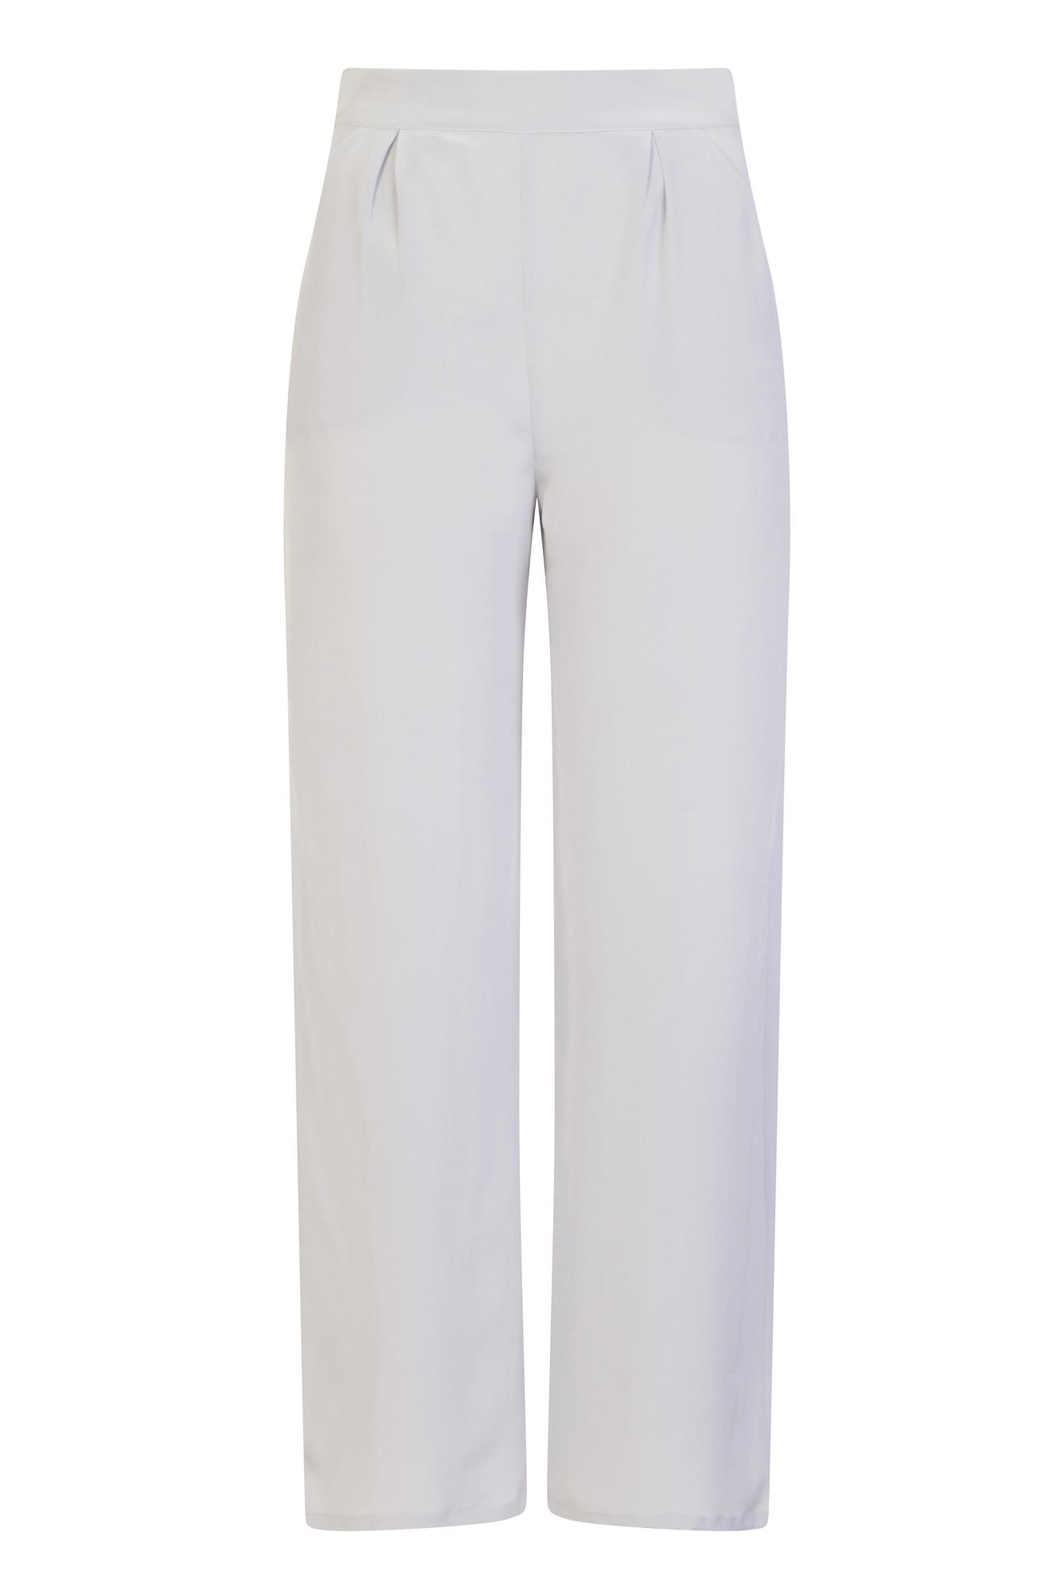 Sophie Cameron Davies Silver Palazzo Trouser - Front Full Image